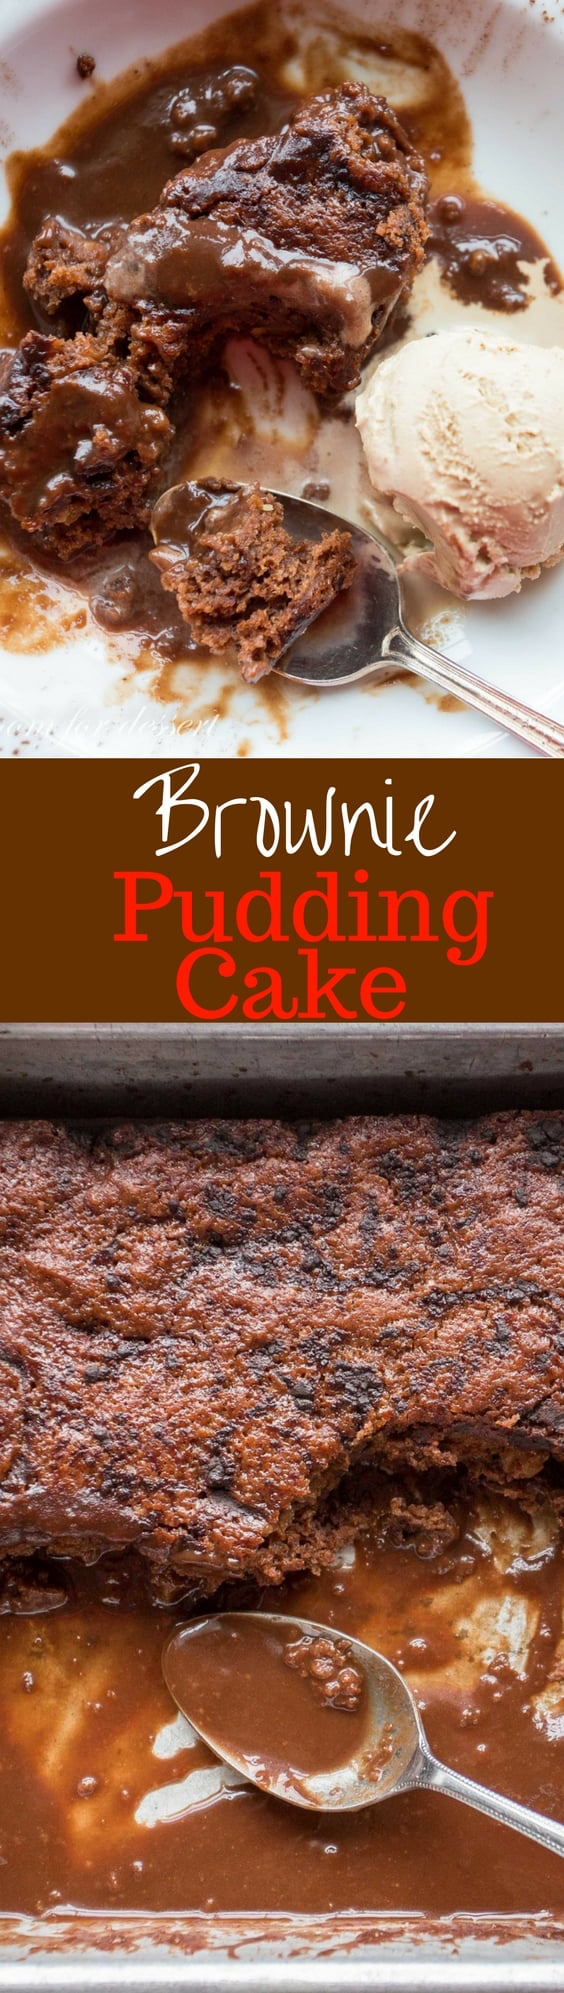 Chocolate Brownie Pudding Cake | www.savingdessert.com